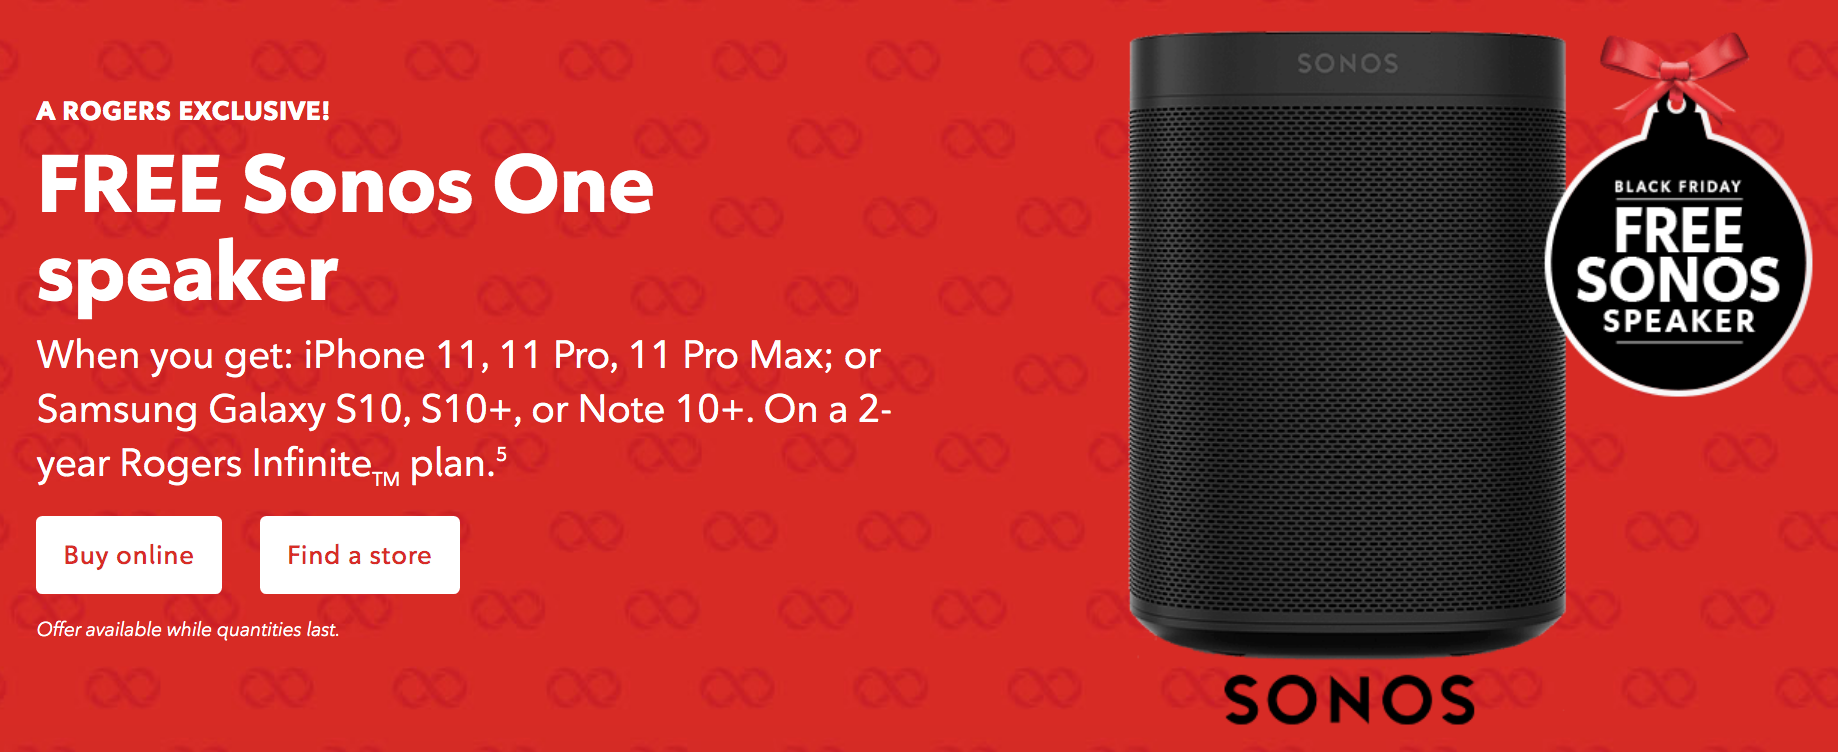 Rogers Offering Free Sonos One Speaker With Select Smartphone Purchases On Two Year Plan